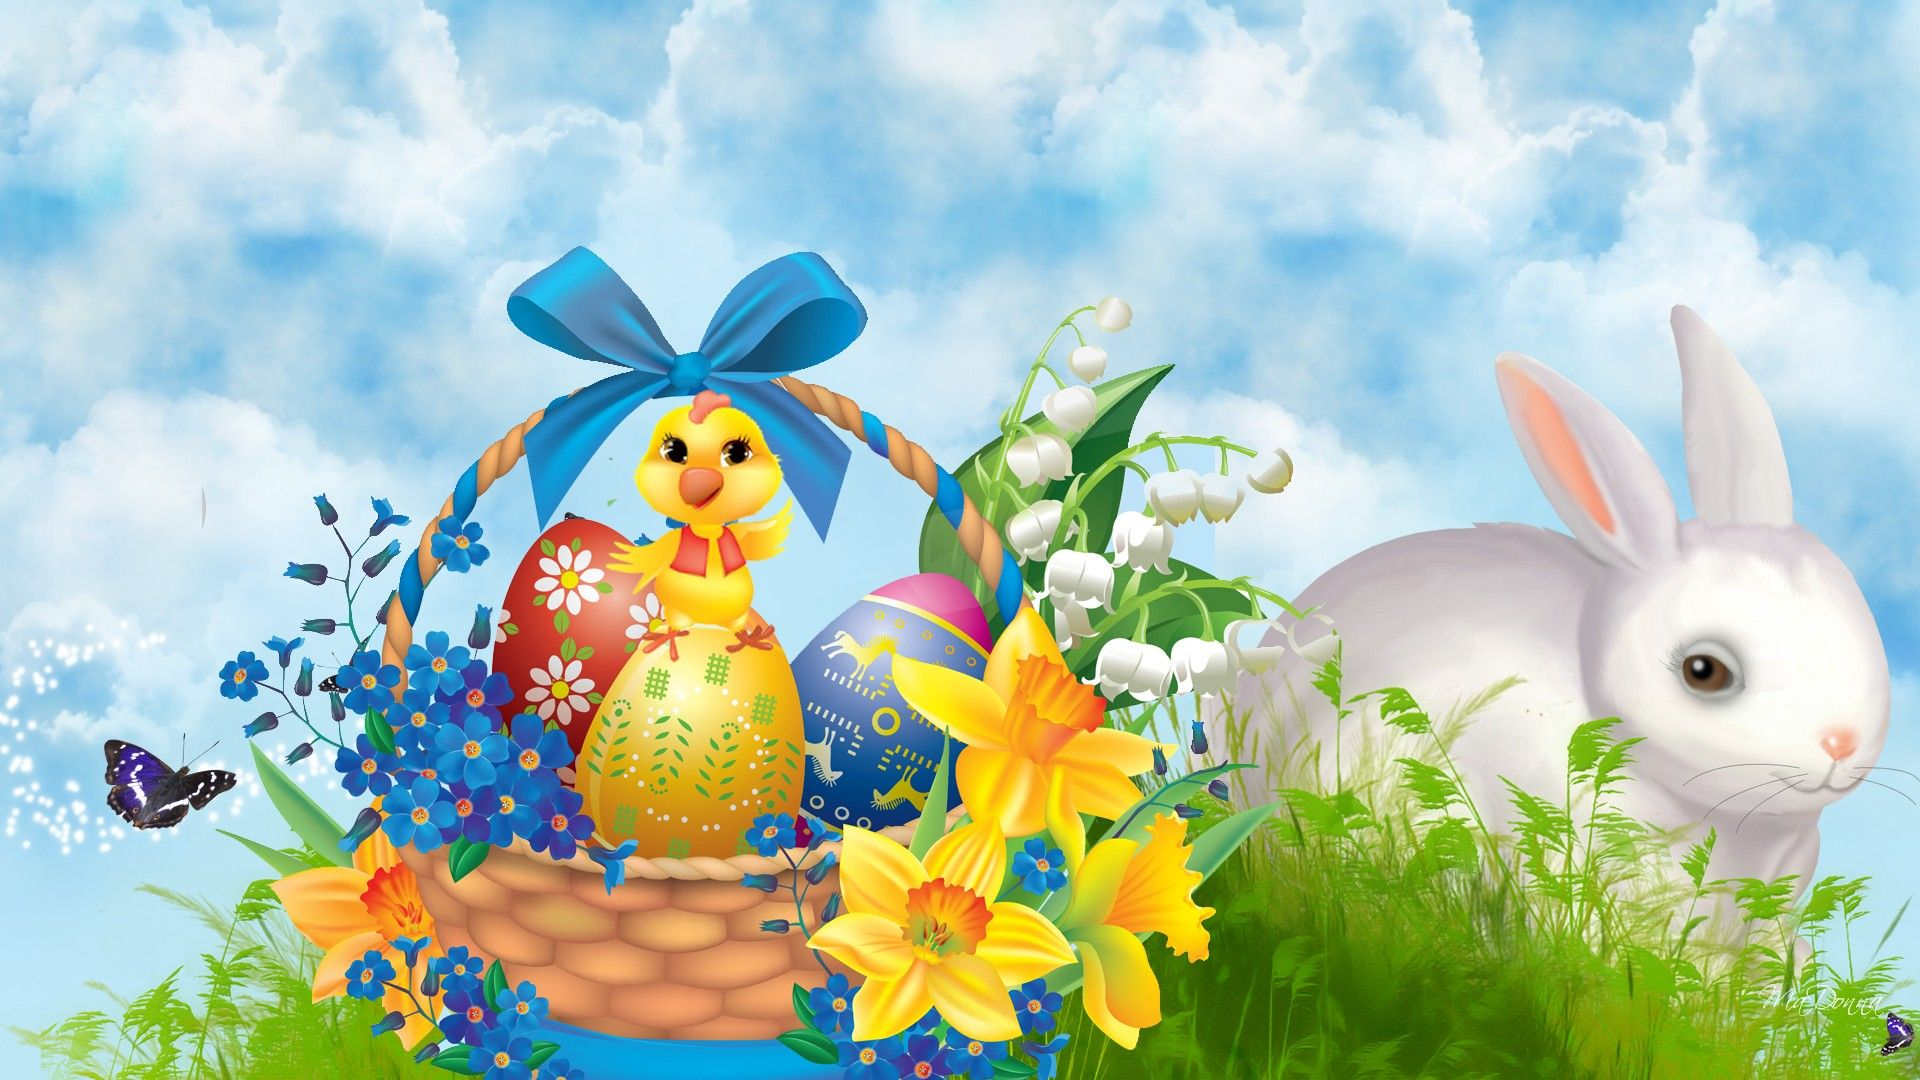 Easter Bunny Ideas With Images | Easter, Easter bunny and ...